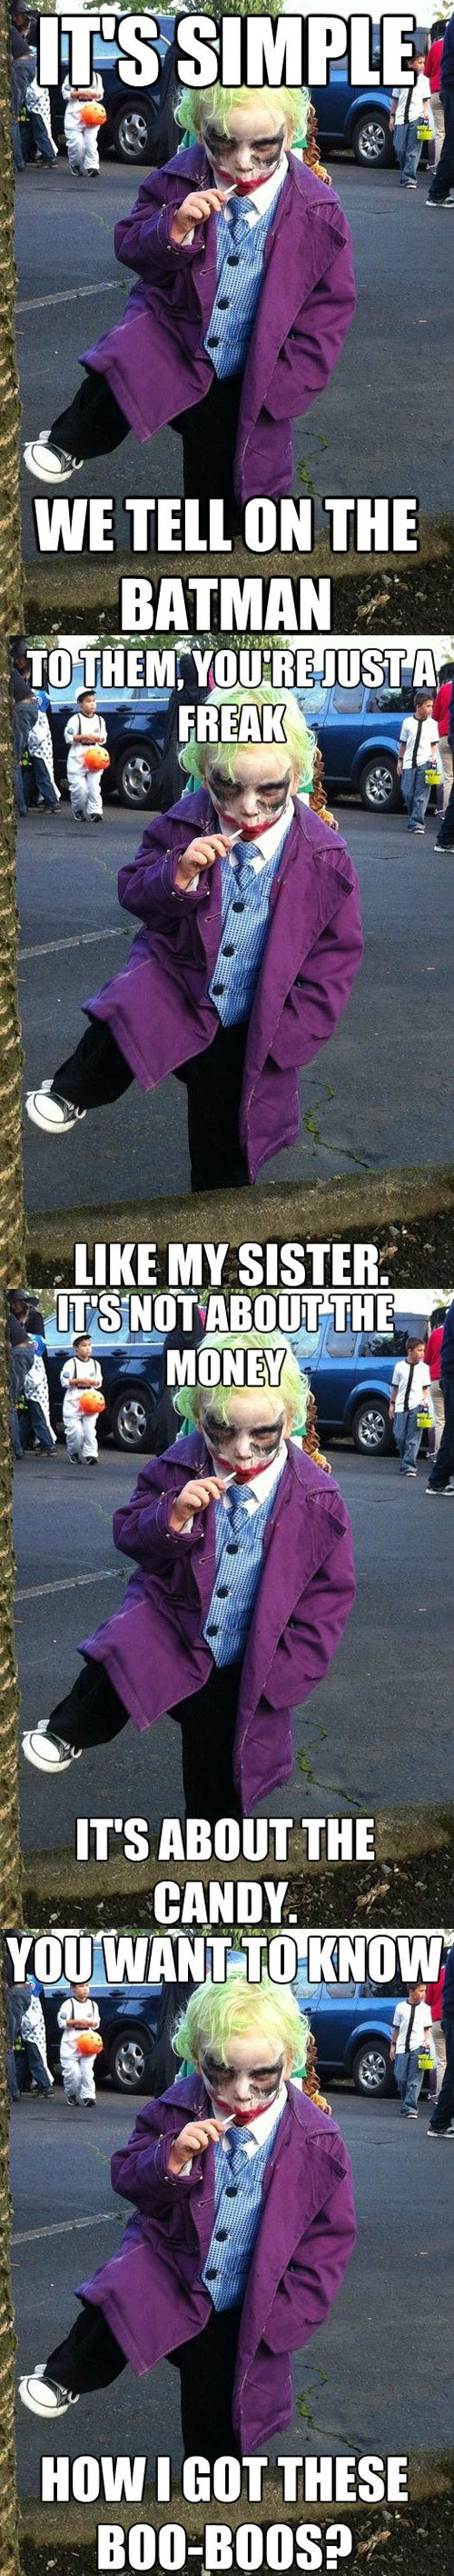 costume joker kid meme scars the dark knight the joker - 6629543936